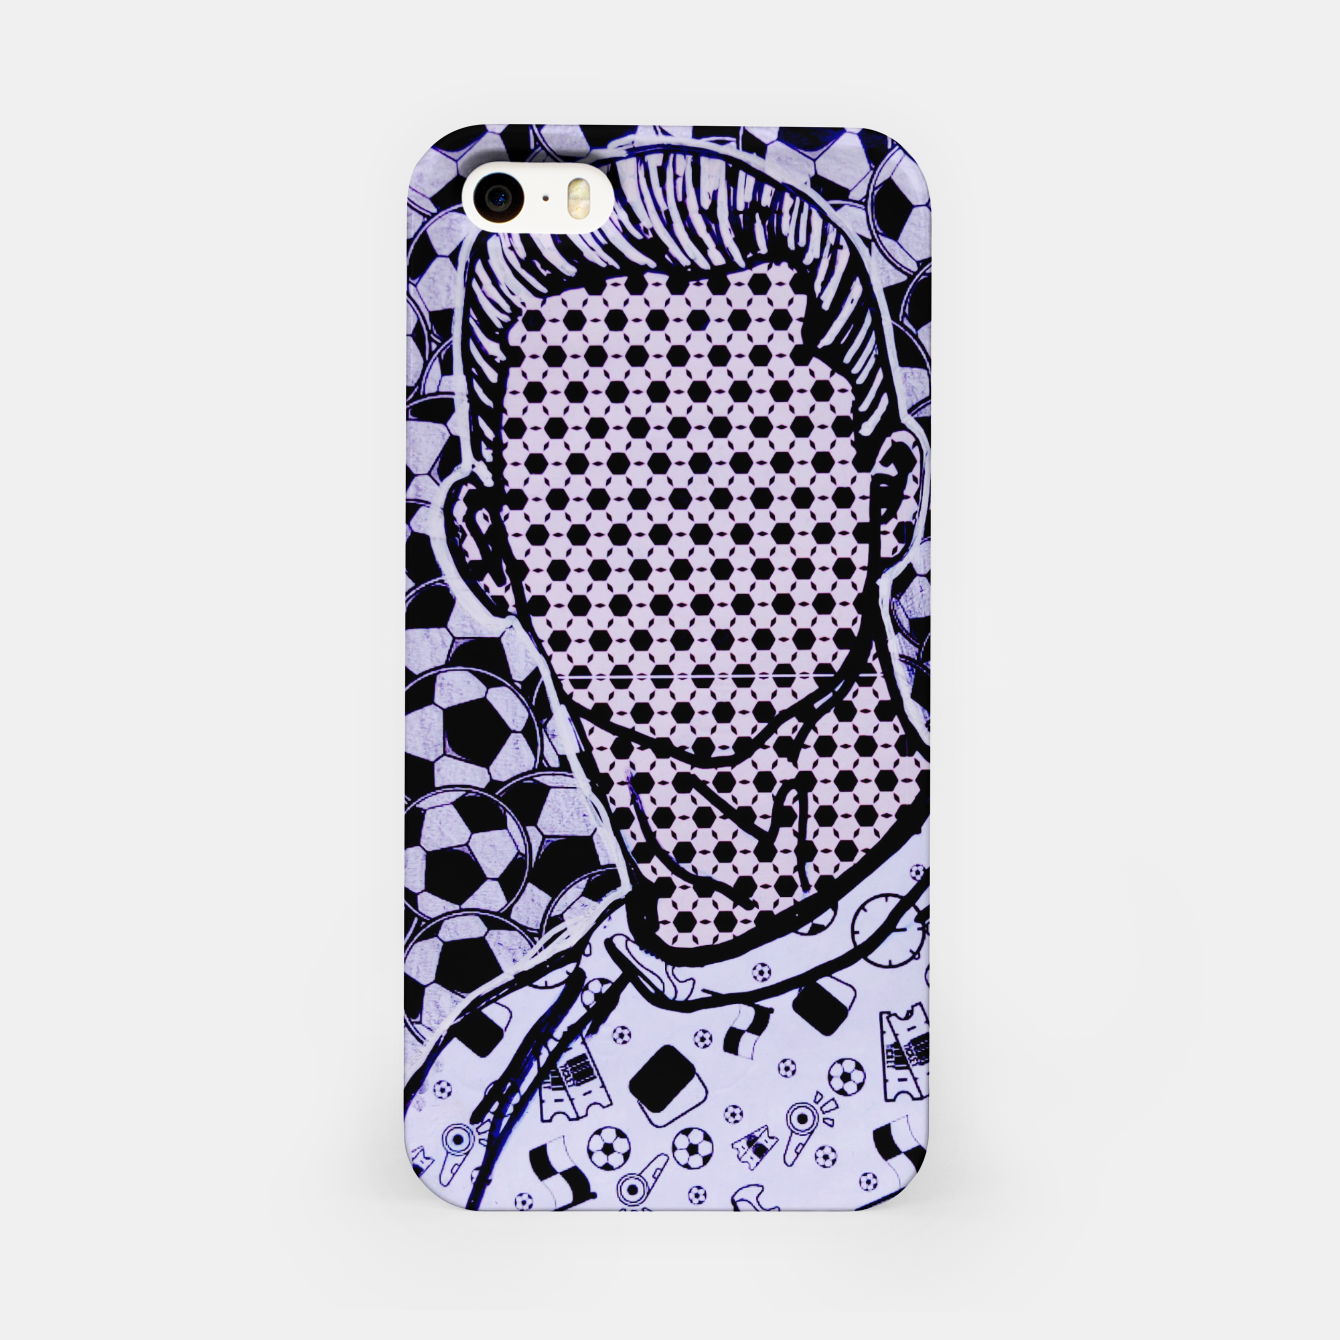 Image of Cristiano cr7 Ronaldo dots soccer celebrity portrait by Yulia A Korneva iPhone Case - Live Heroes